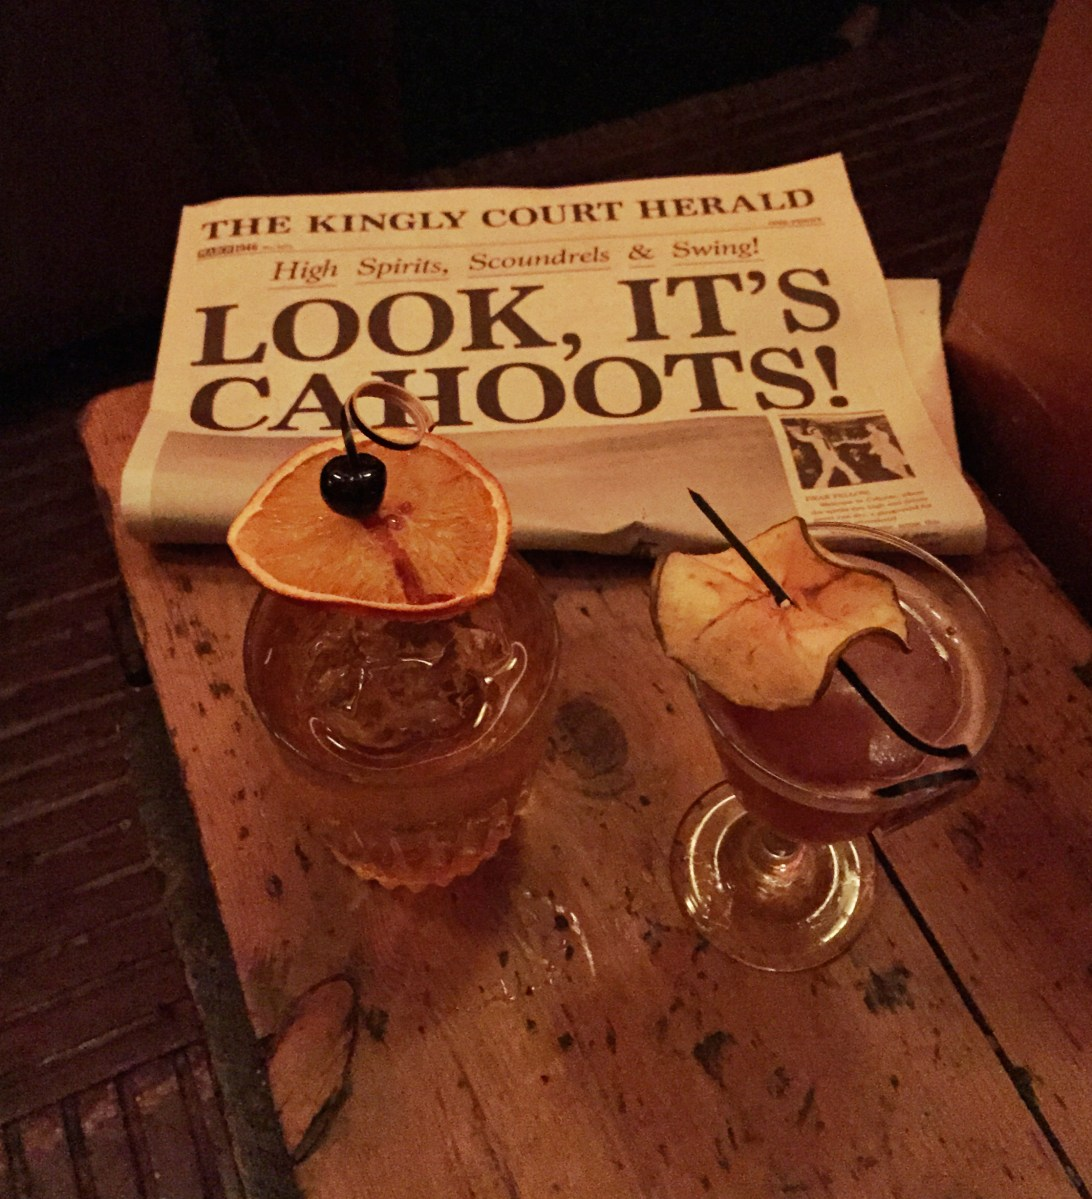 London's New Whizzo Underground Bar | Cahoots, 13 Kingly Court, London W1B 5PG